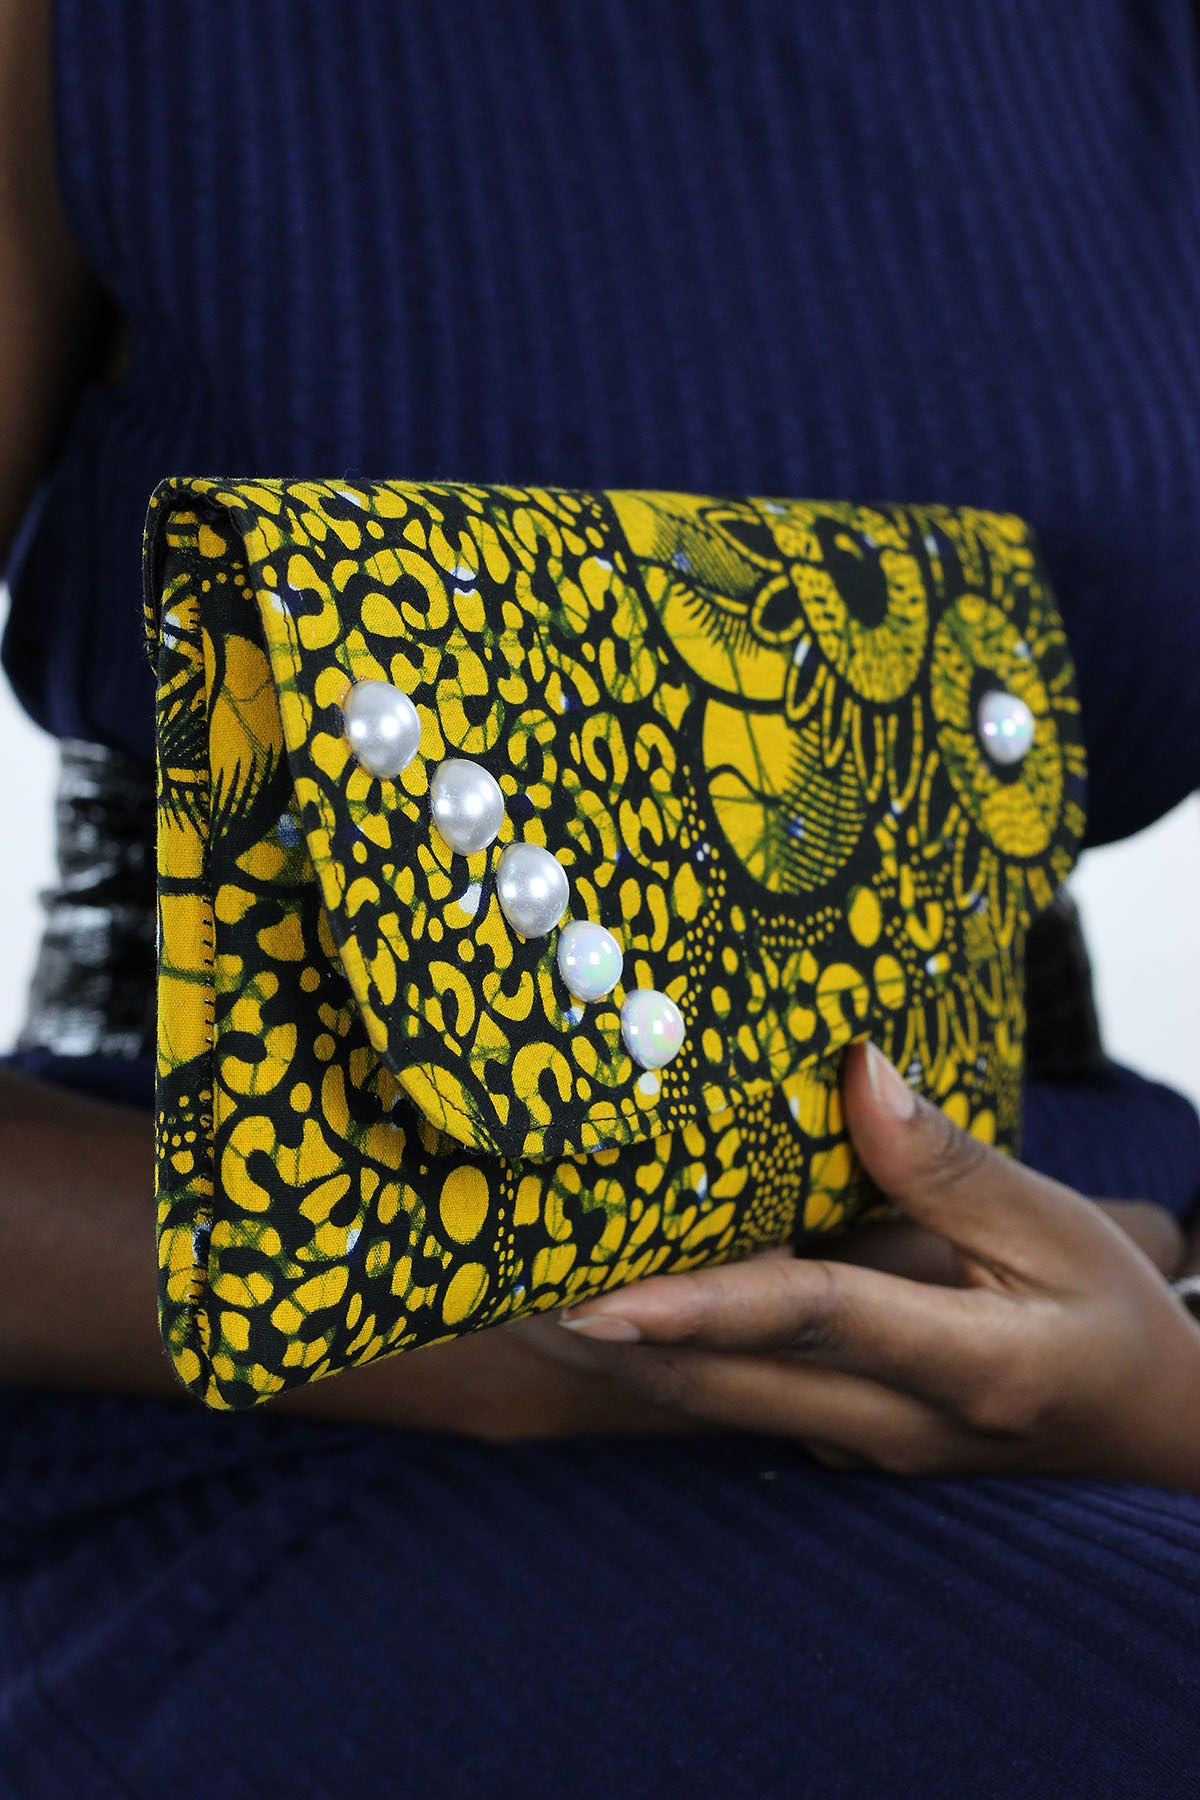 African Print Clutch Pearl Purse- Yellow/Black Floral Print